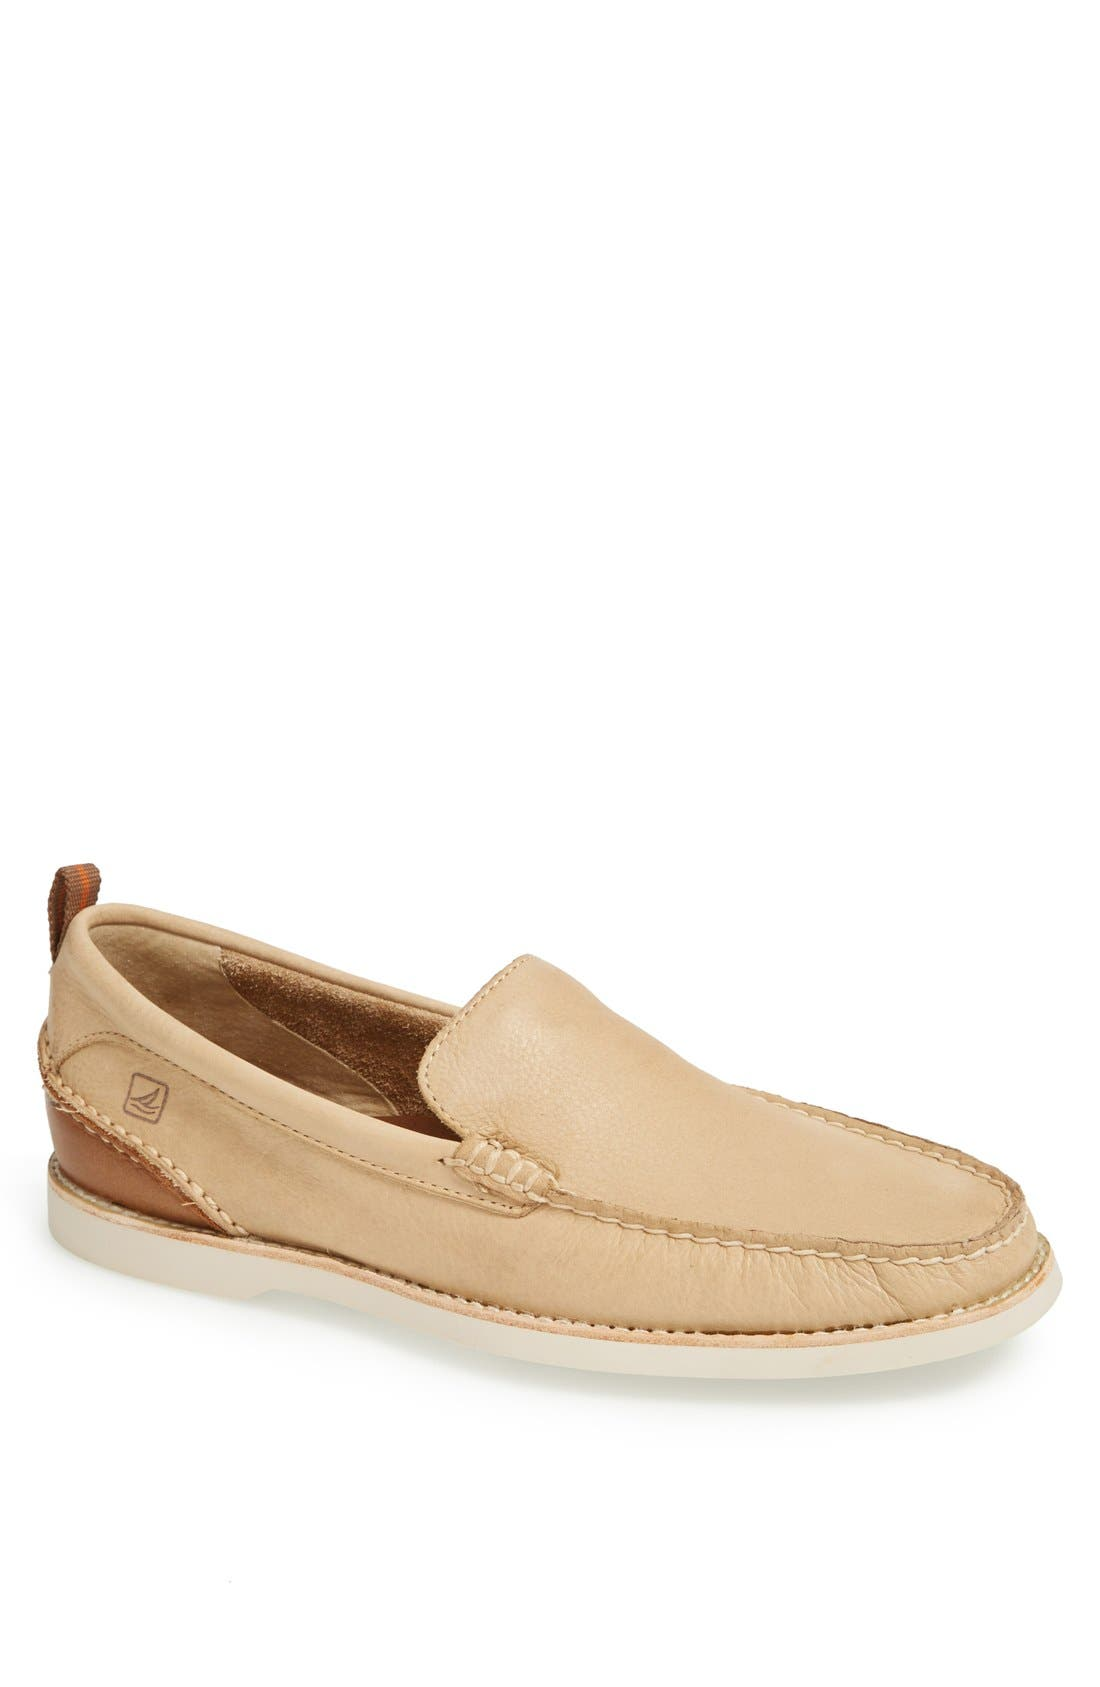 Main Image - Sperry Top-Sider® 'Seaside Venetian' Slip-On